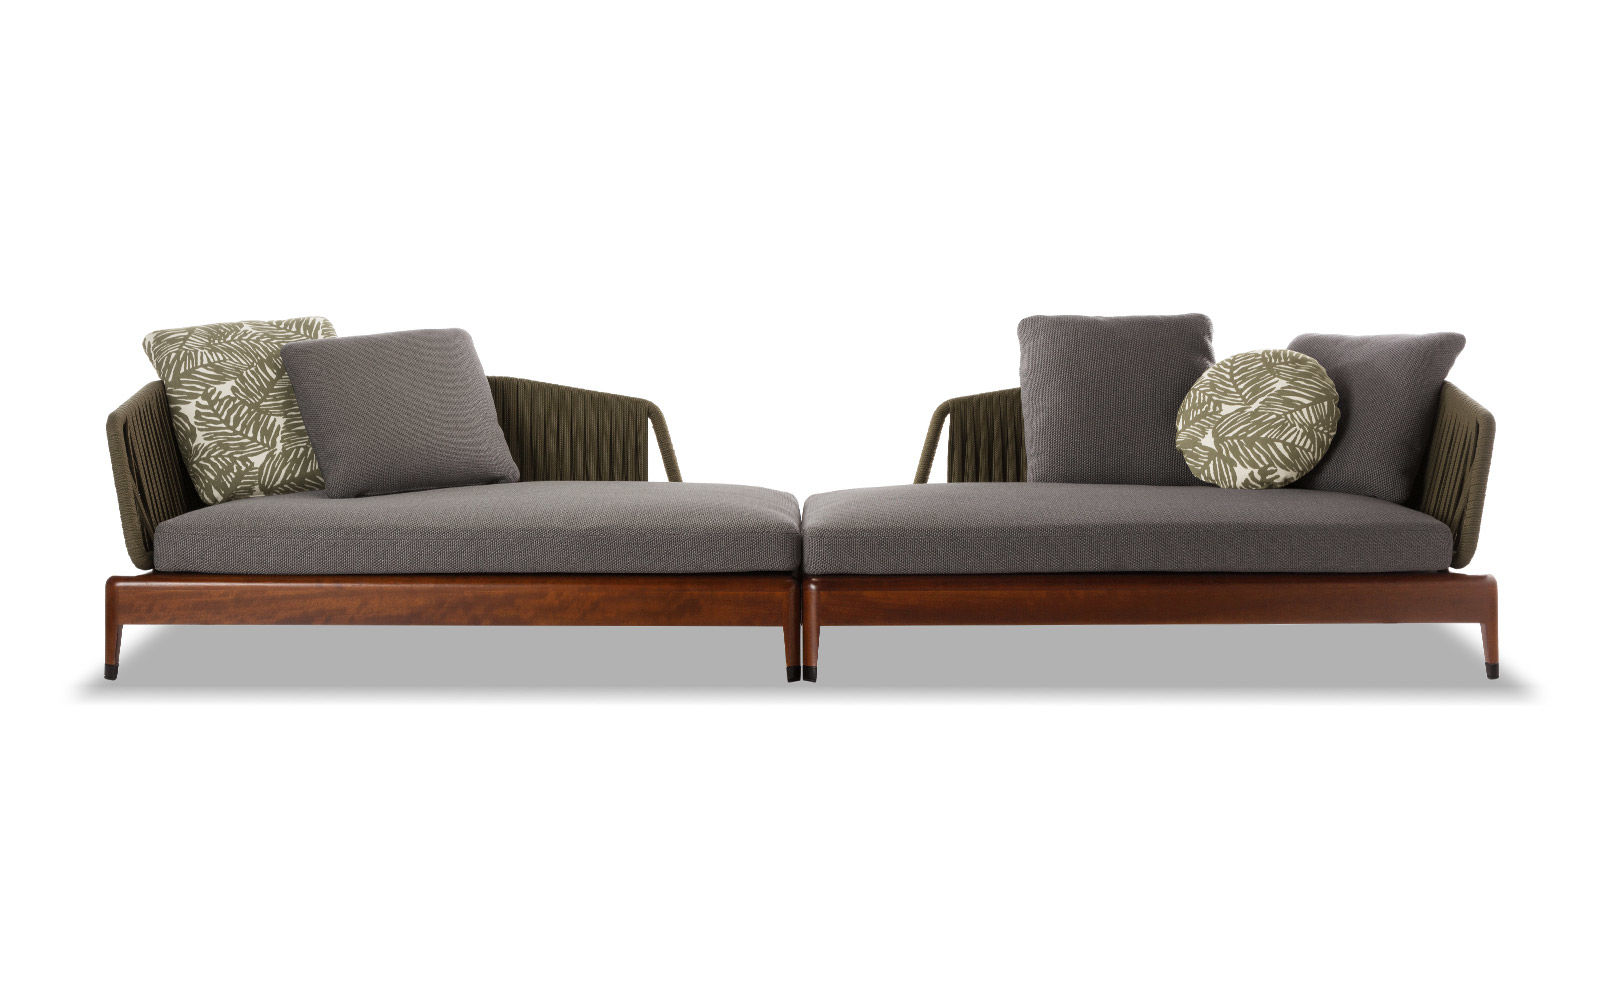 sofa settee price natuzzi surround corner sofas living room natuzzi natuzzi best price. Black Bedroom Furniture Sets. Home Design Ideas